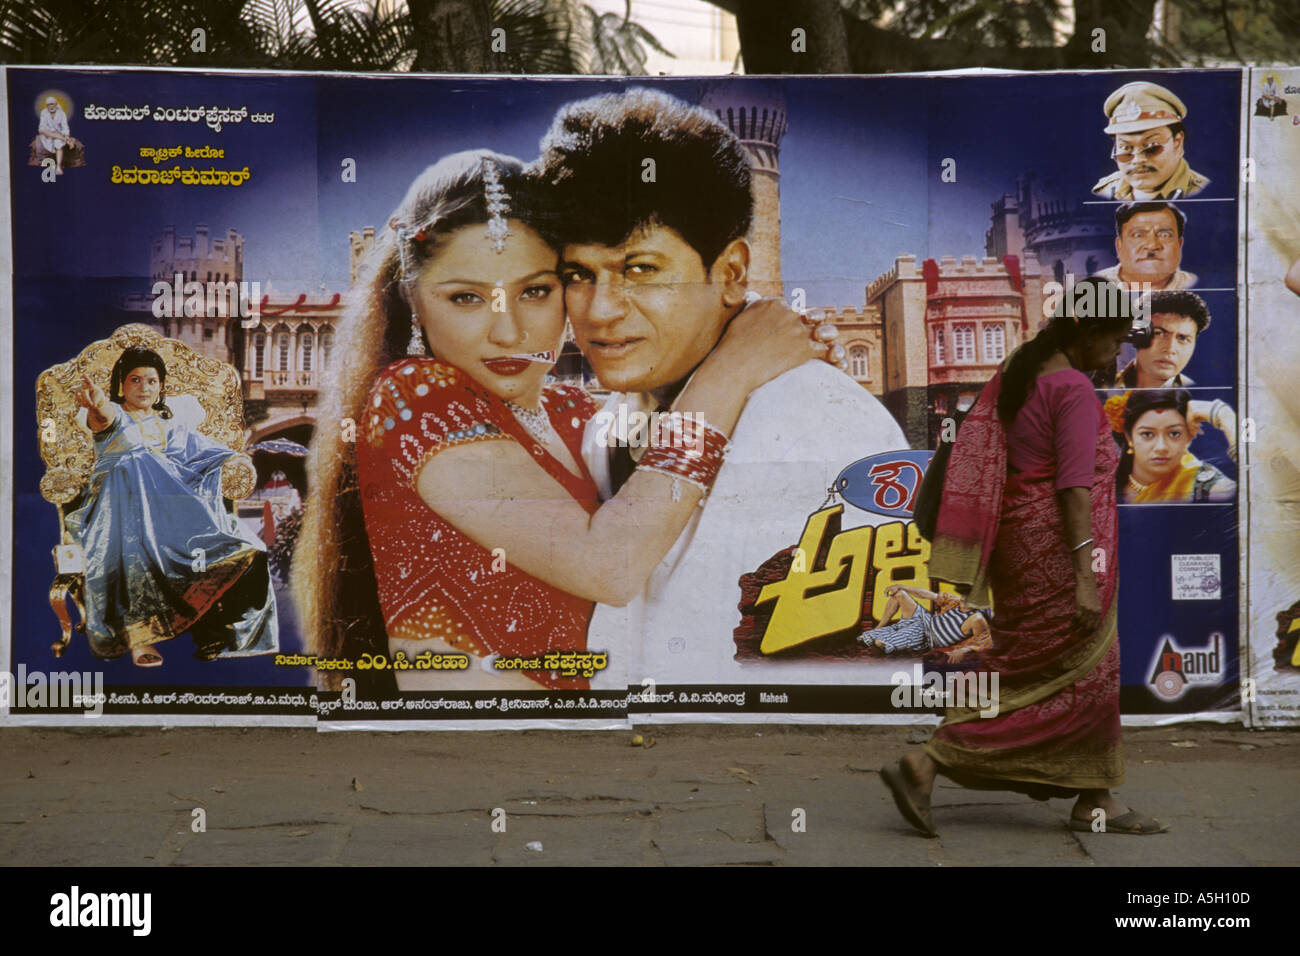 India Mysore movie poster - Stock Image